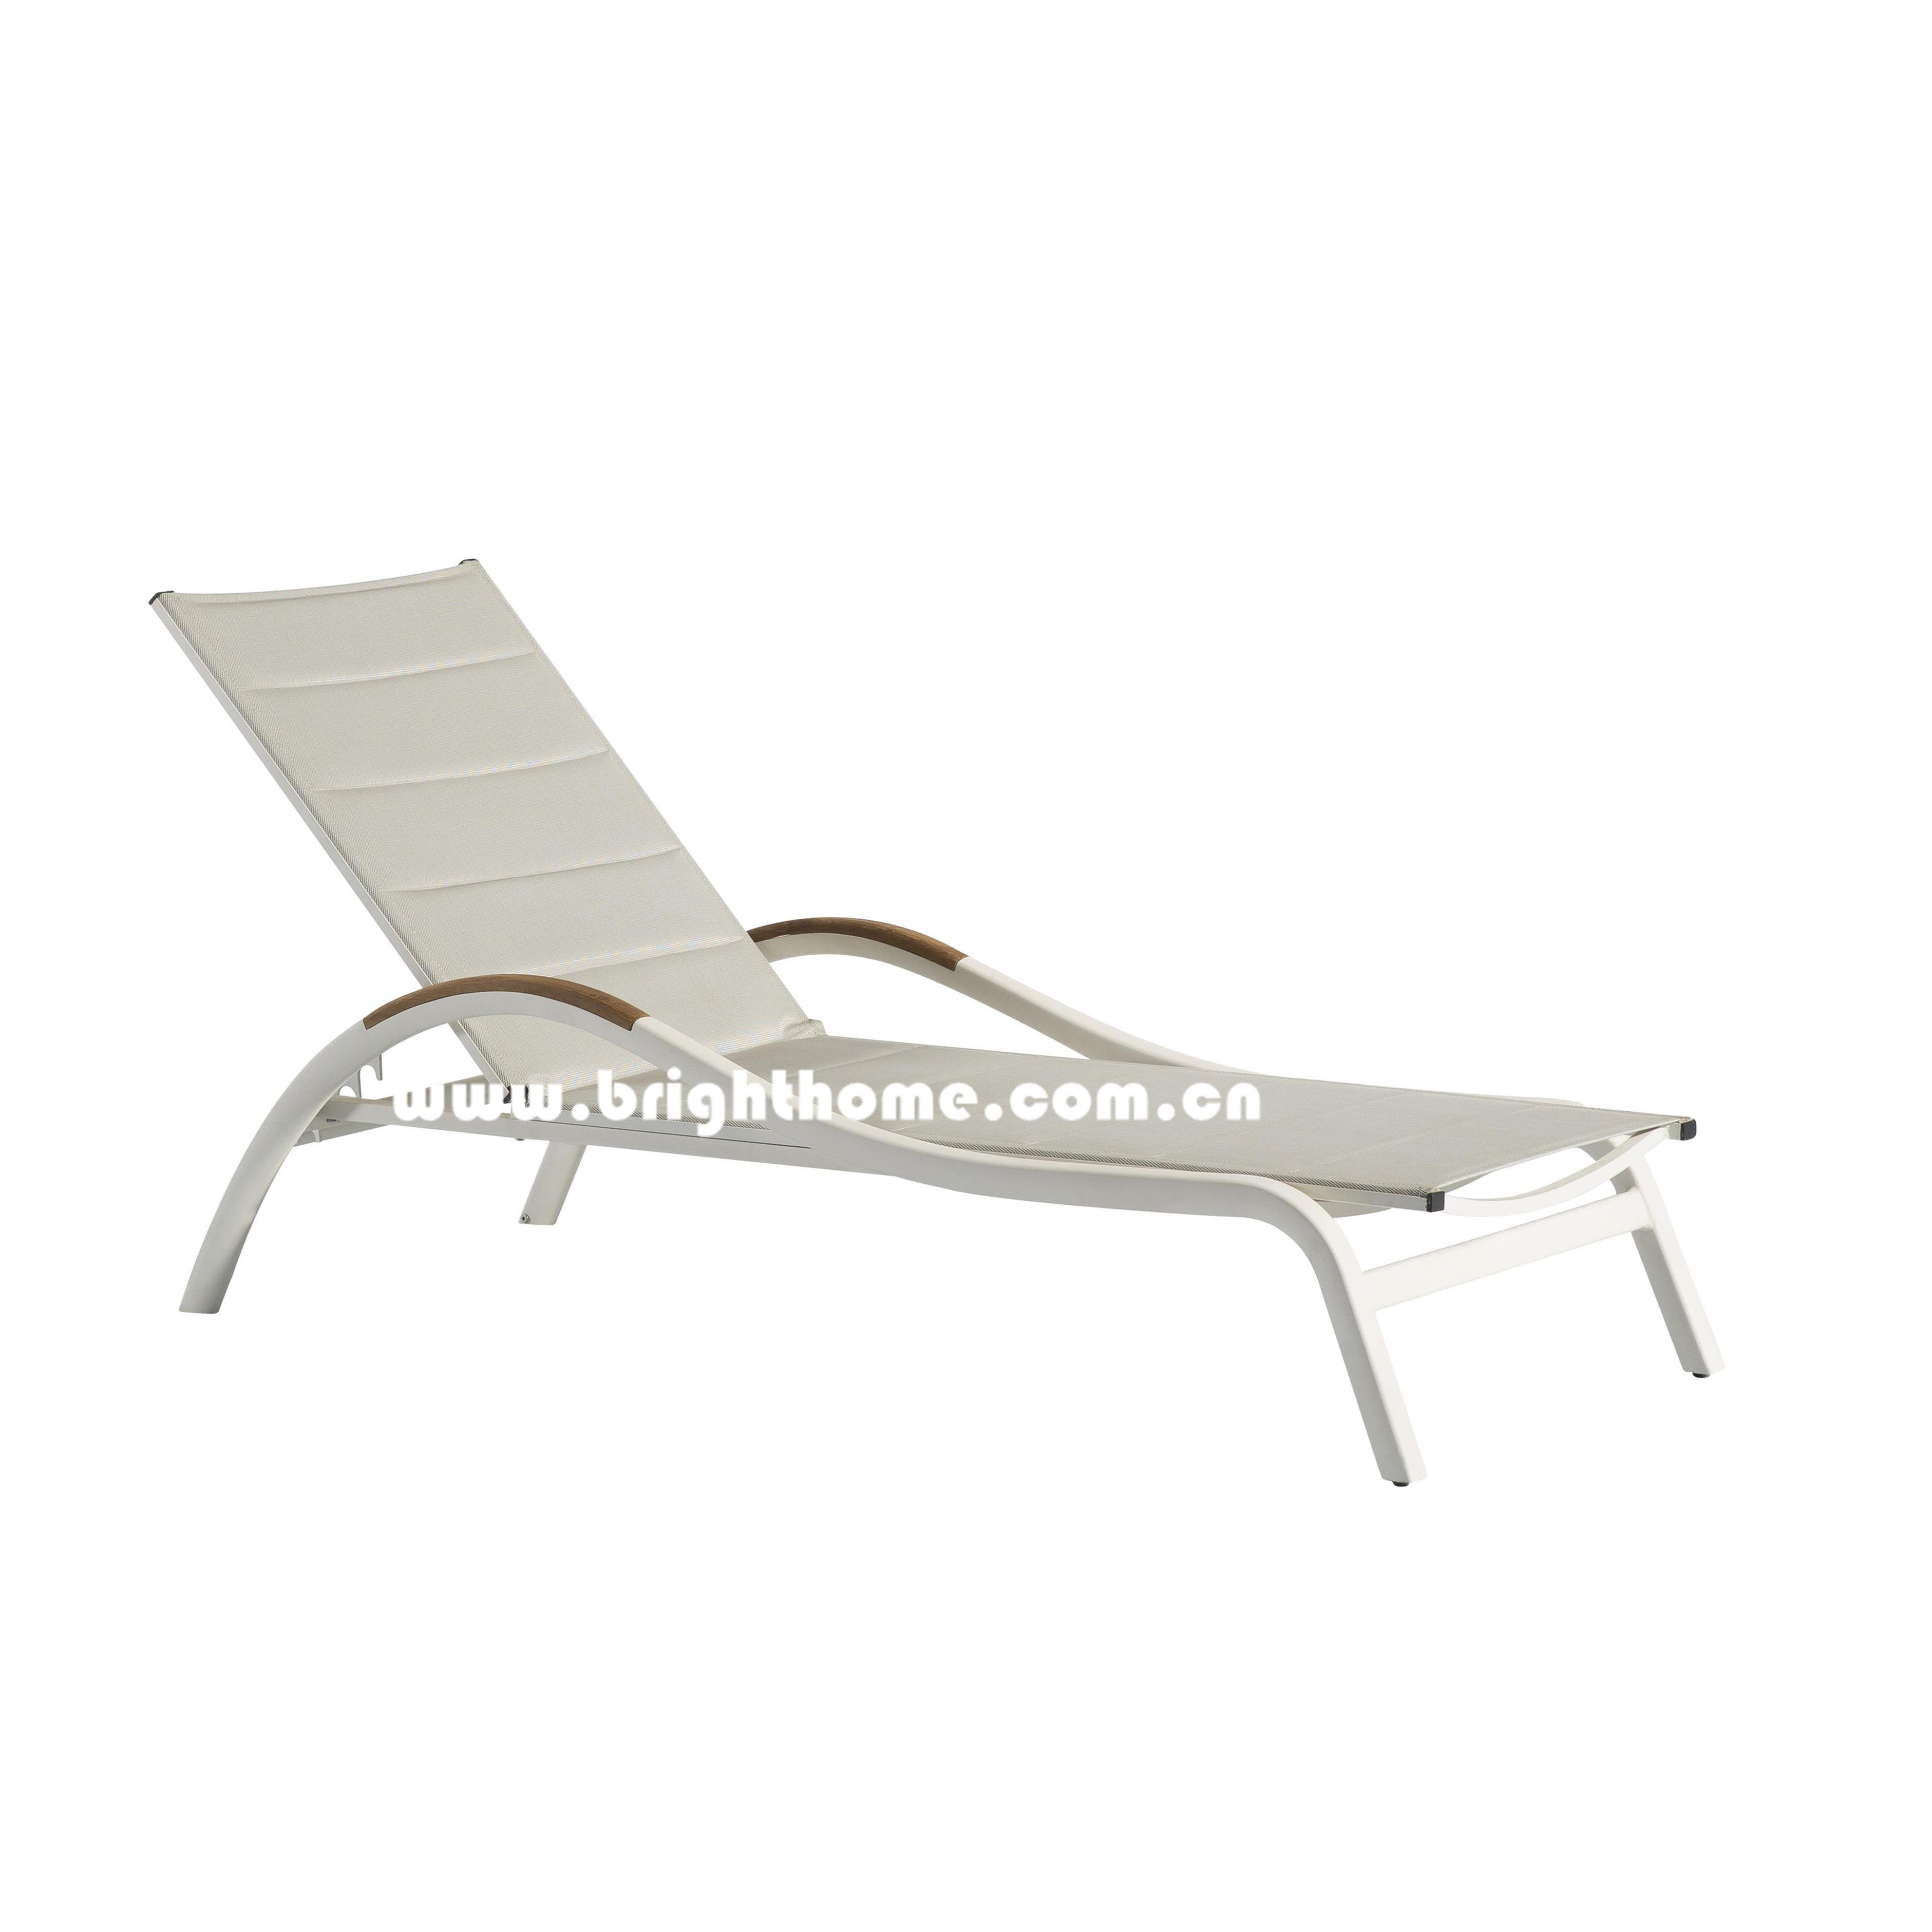 Aluminum Sun Lounger/Chaise Bed/Beach Chair